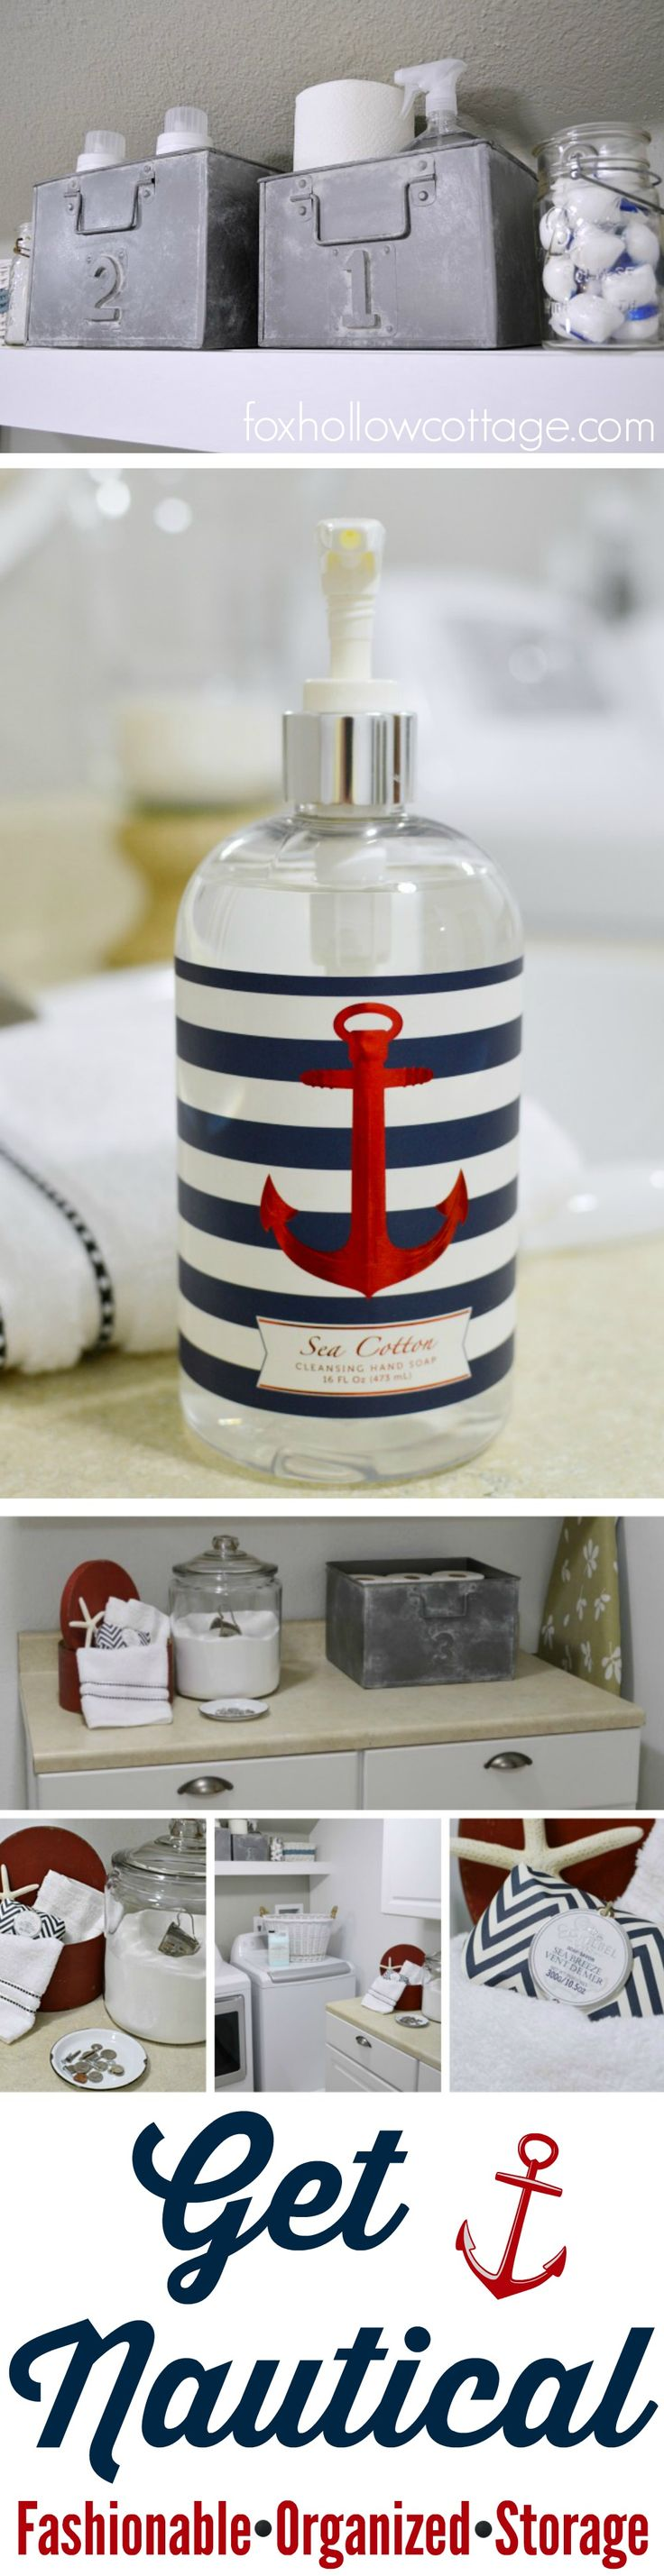 Bathroom Laundry Room Makeover: Nautical Decor, Organized Home Storage Solutions #homegoodshappy and DIY accents.